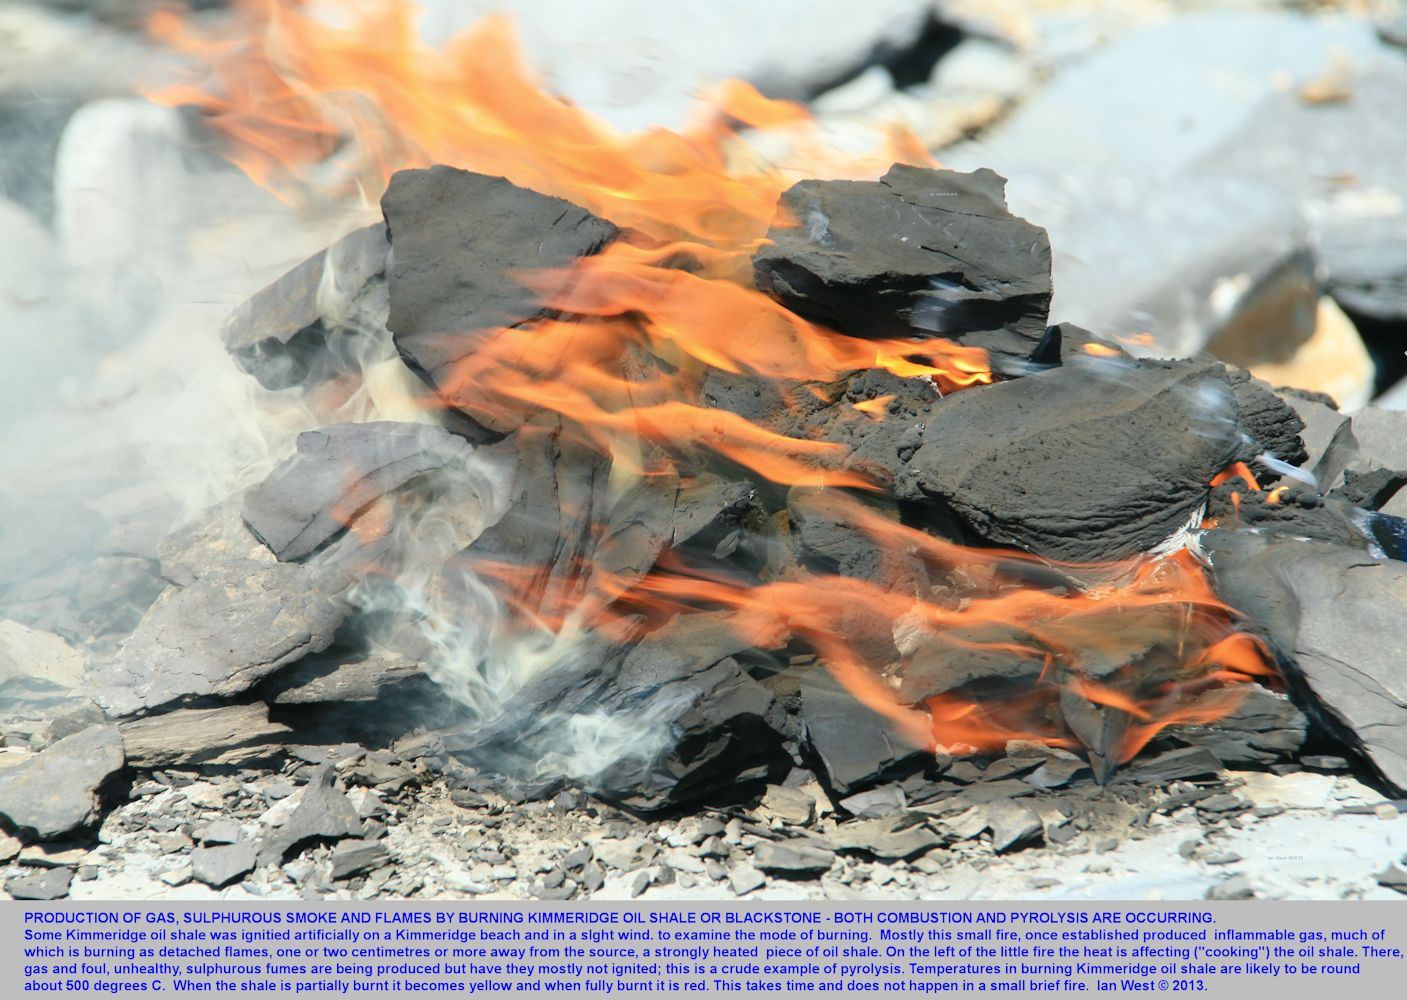 Burning blocks of Kimmeridge oil shale or blackstone, a potential source of shale gas, seen in a small artificially started fire at Kimmeridge, Dorset, 2013